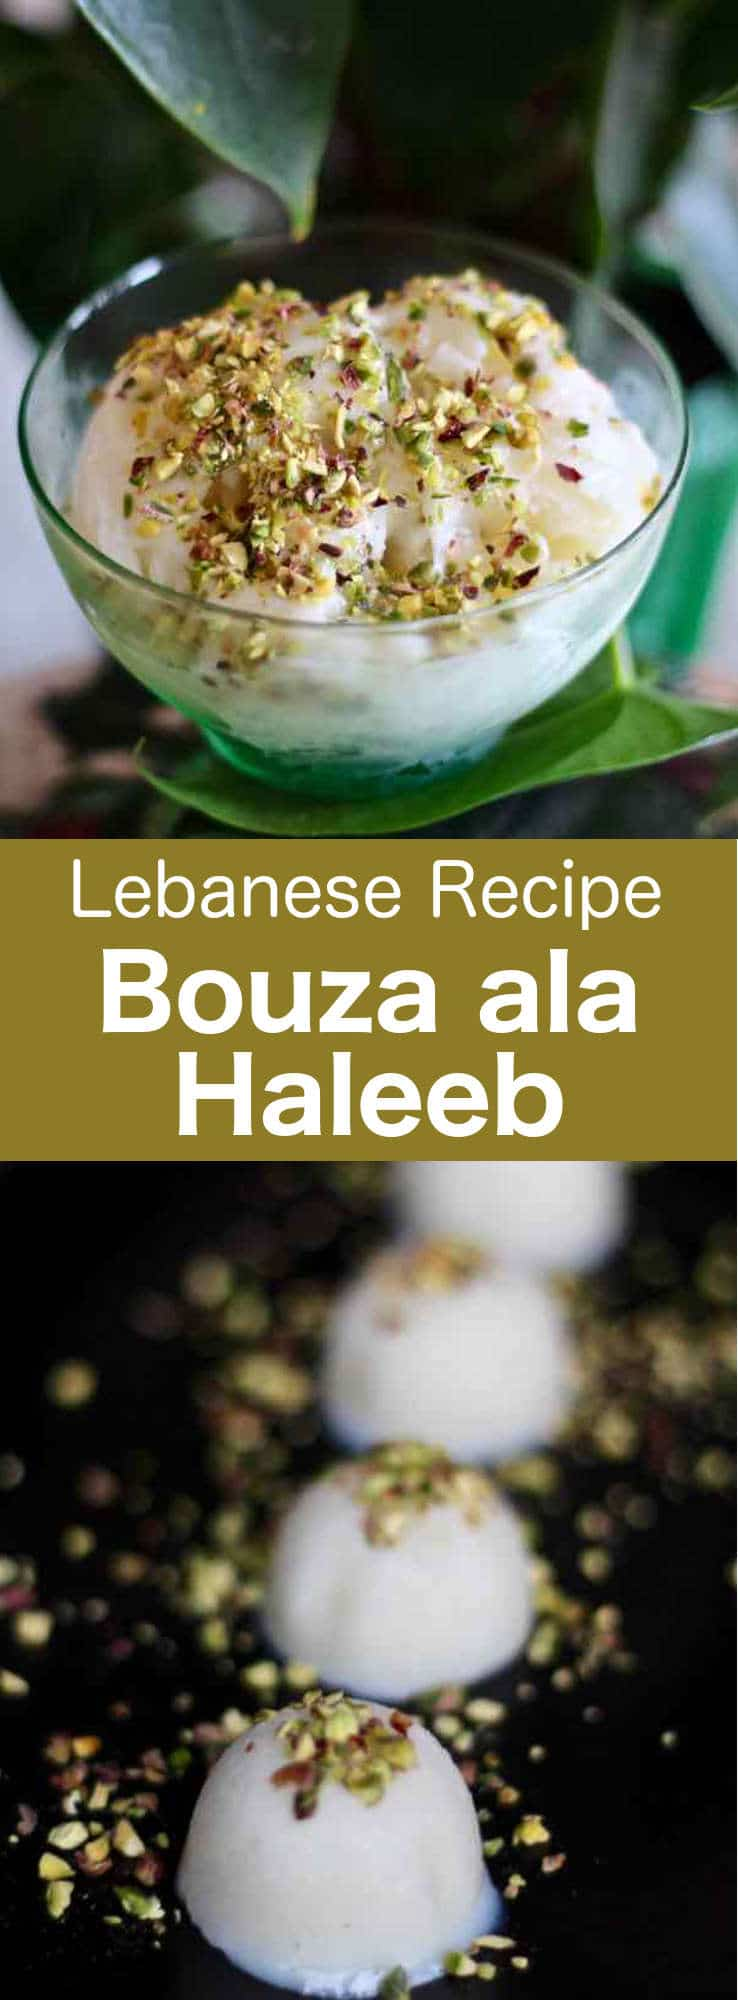 Bouza ala haleeb is a delicious traditional Lebanese ice cream made with salep and mastic and flavored with orange blossom water. #Lebanon #Lebanese #MiddleEast #MiddleEasternDessert #WorldCuisine #196flavors